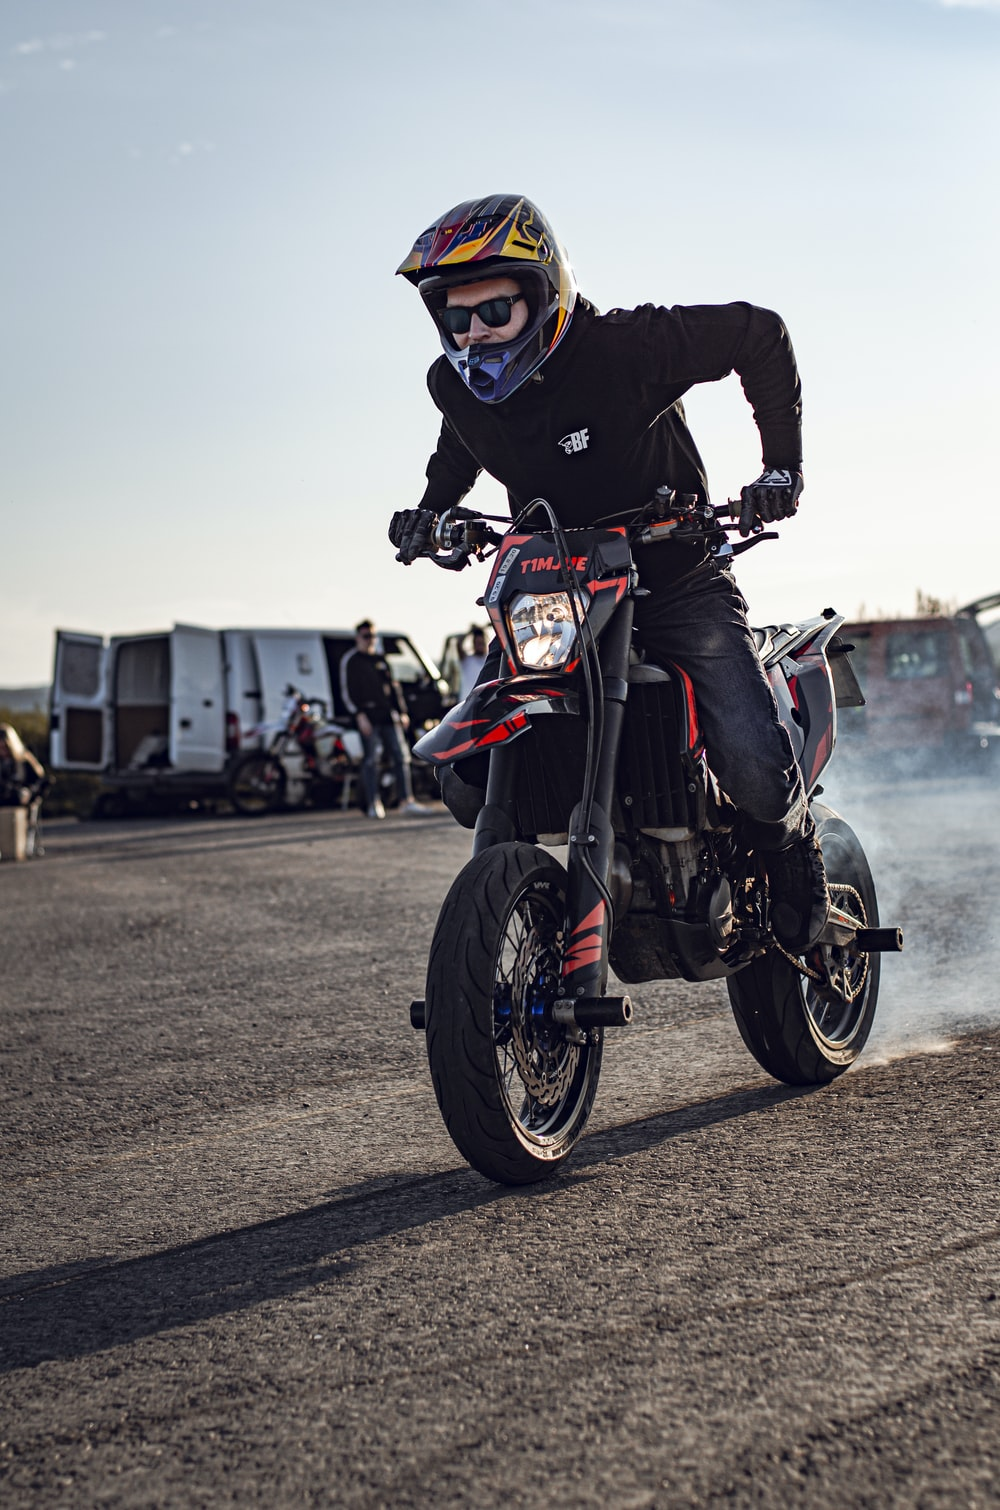 man in black and red motorcycle suit riding motorcycle